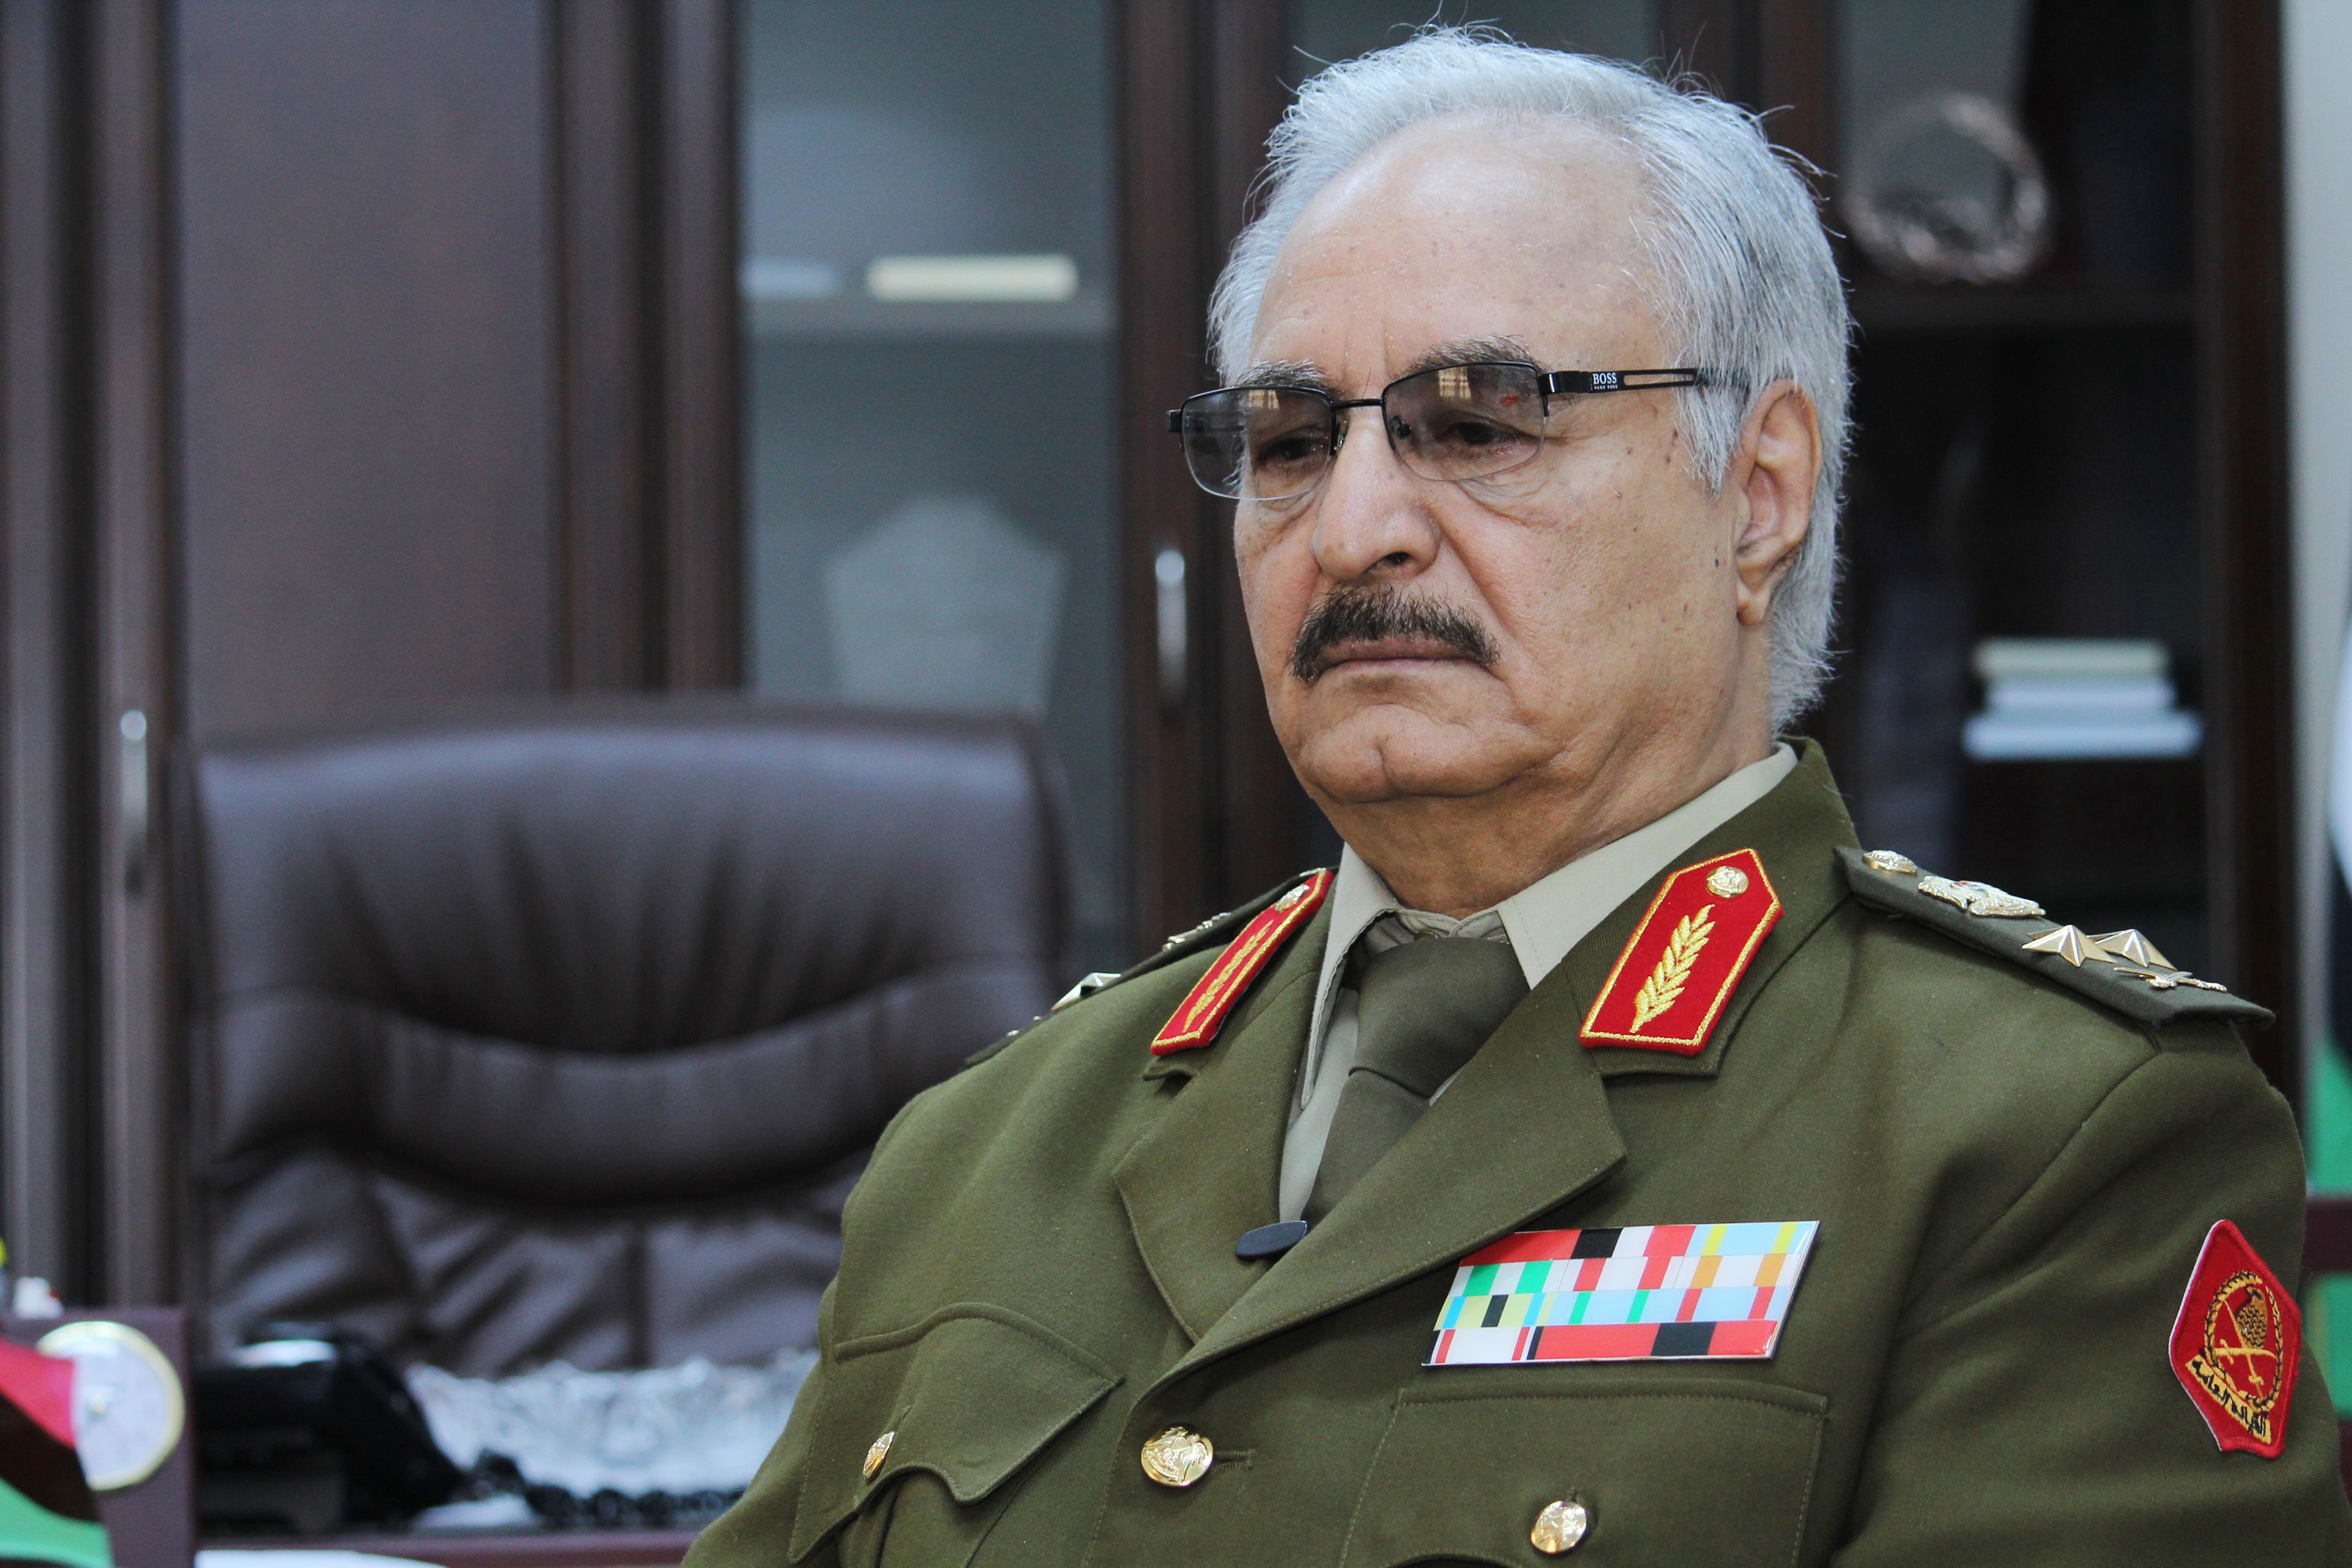 In this March 18, 2015 photo, Gen. Khalifa Hifter, Libya's top army chief, speaks during an interview with the Associated Press in al-Marj, Libya. (Mohammed El-Sheikhy/AP)